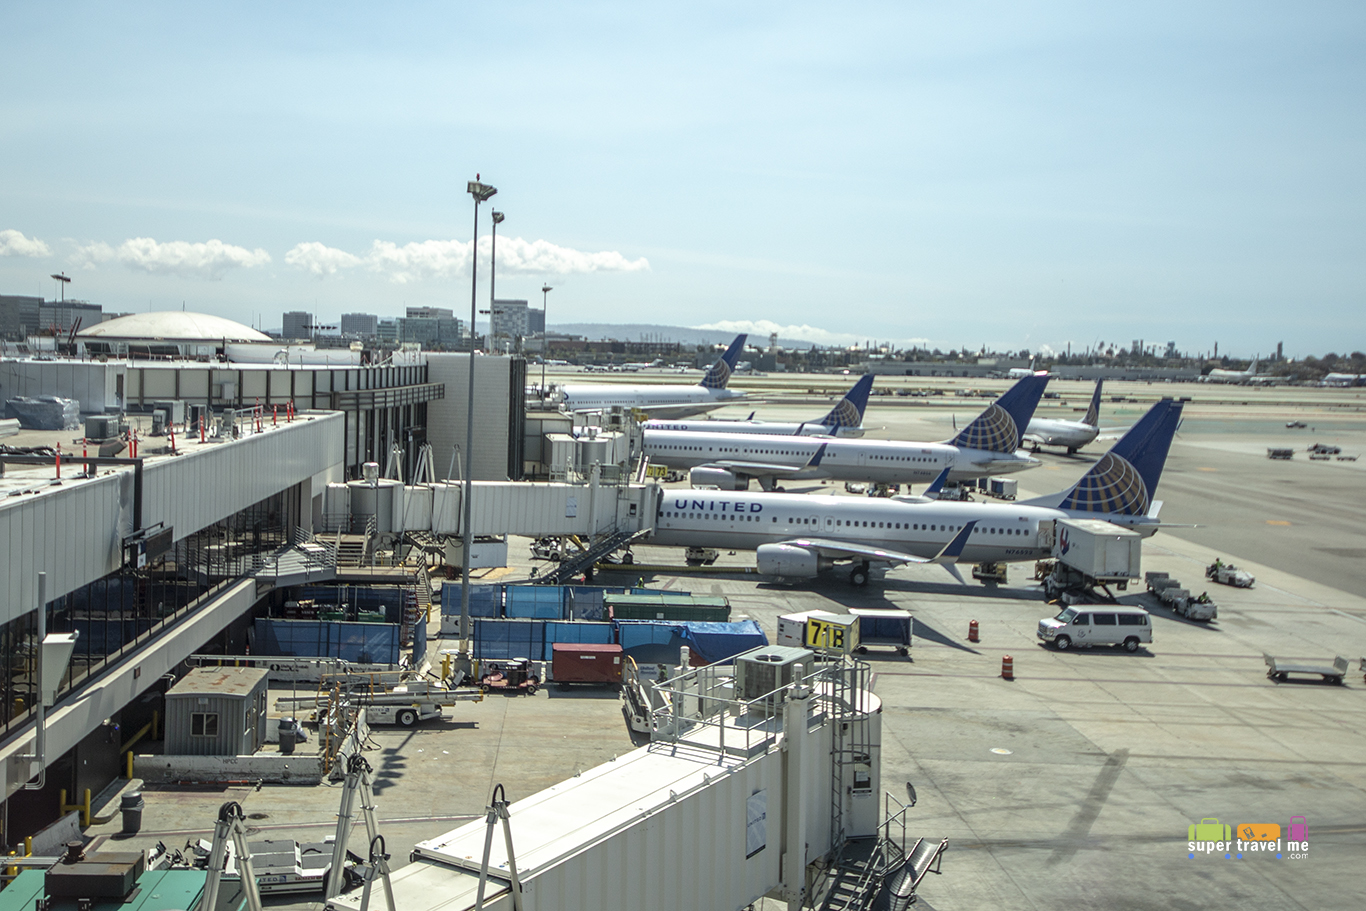 United Airlines Aircraft at LAX 2018